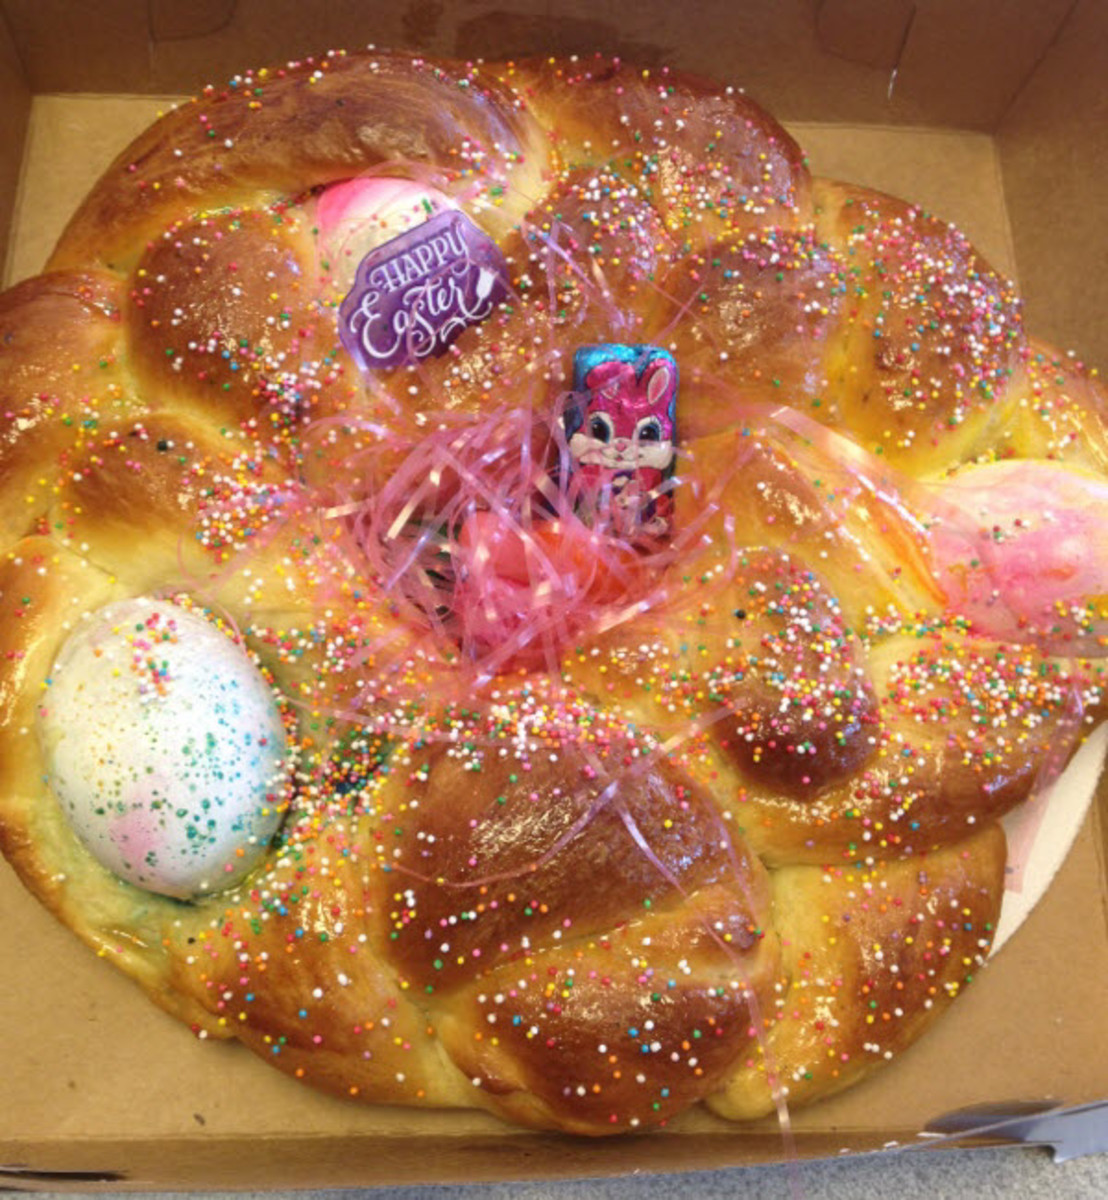 A loaf of Easter bread topped with Easter trinkets.